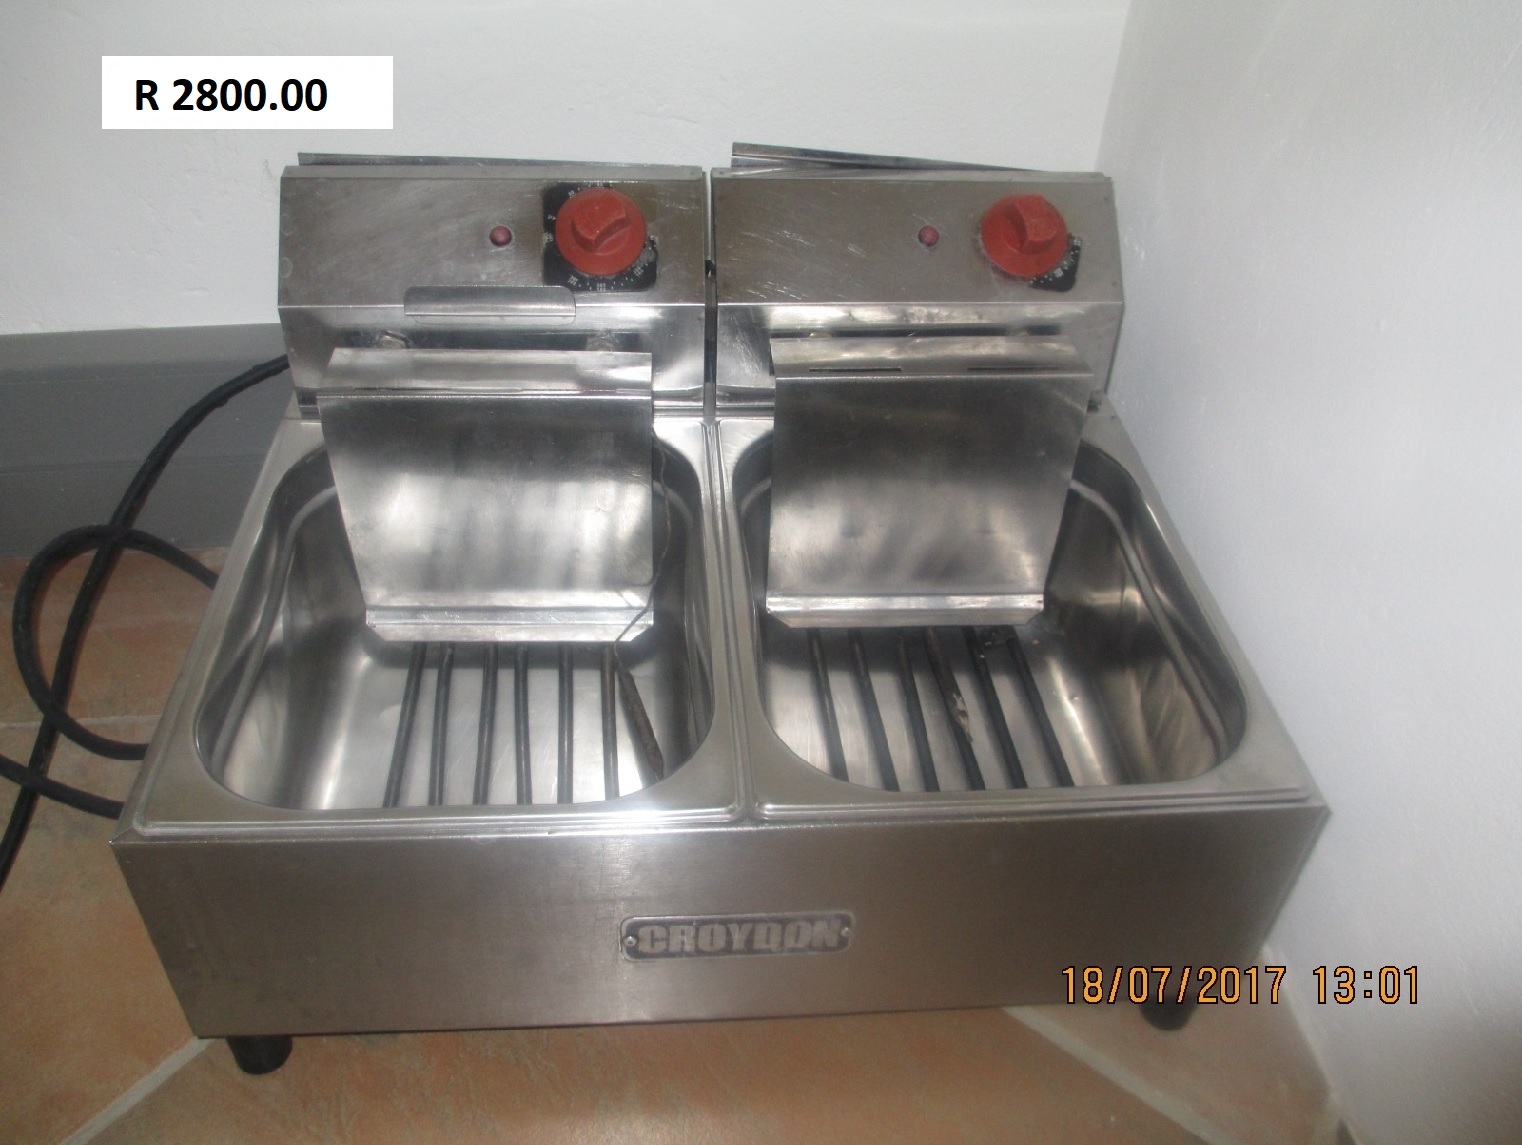 Double deep fryer - Electrical - R2800.00 - CATERING EQUIPMENT